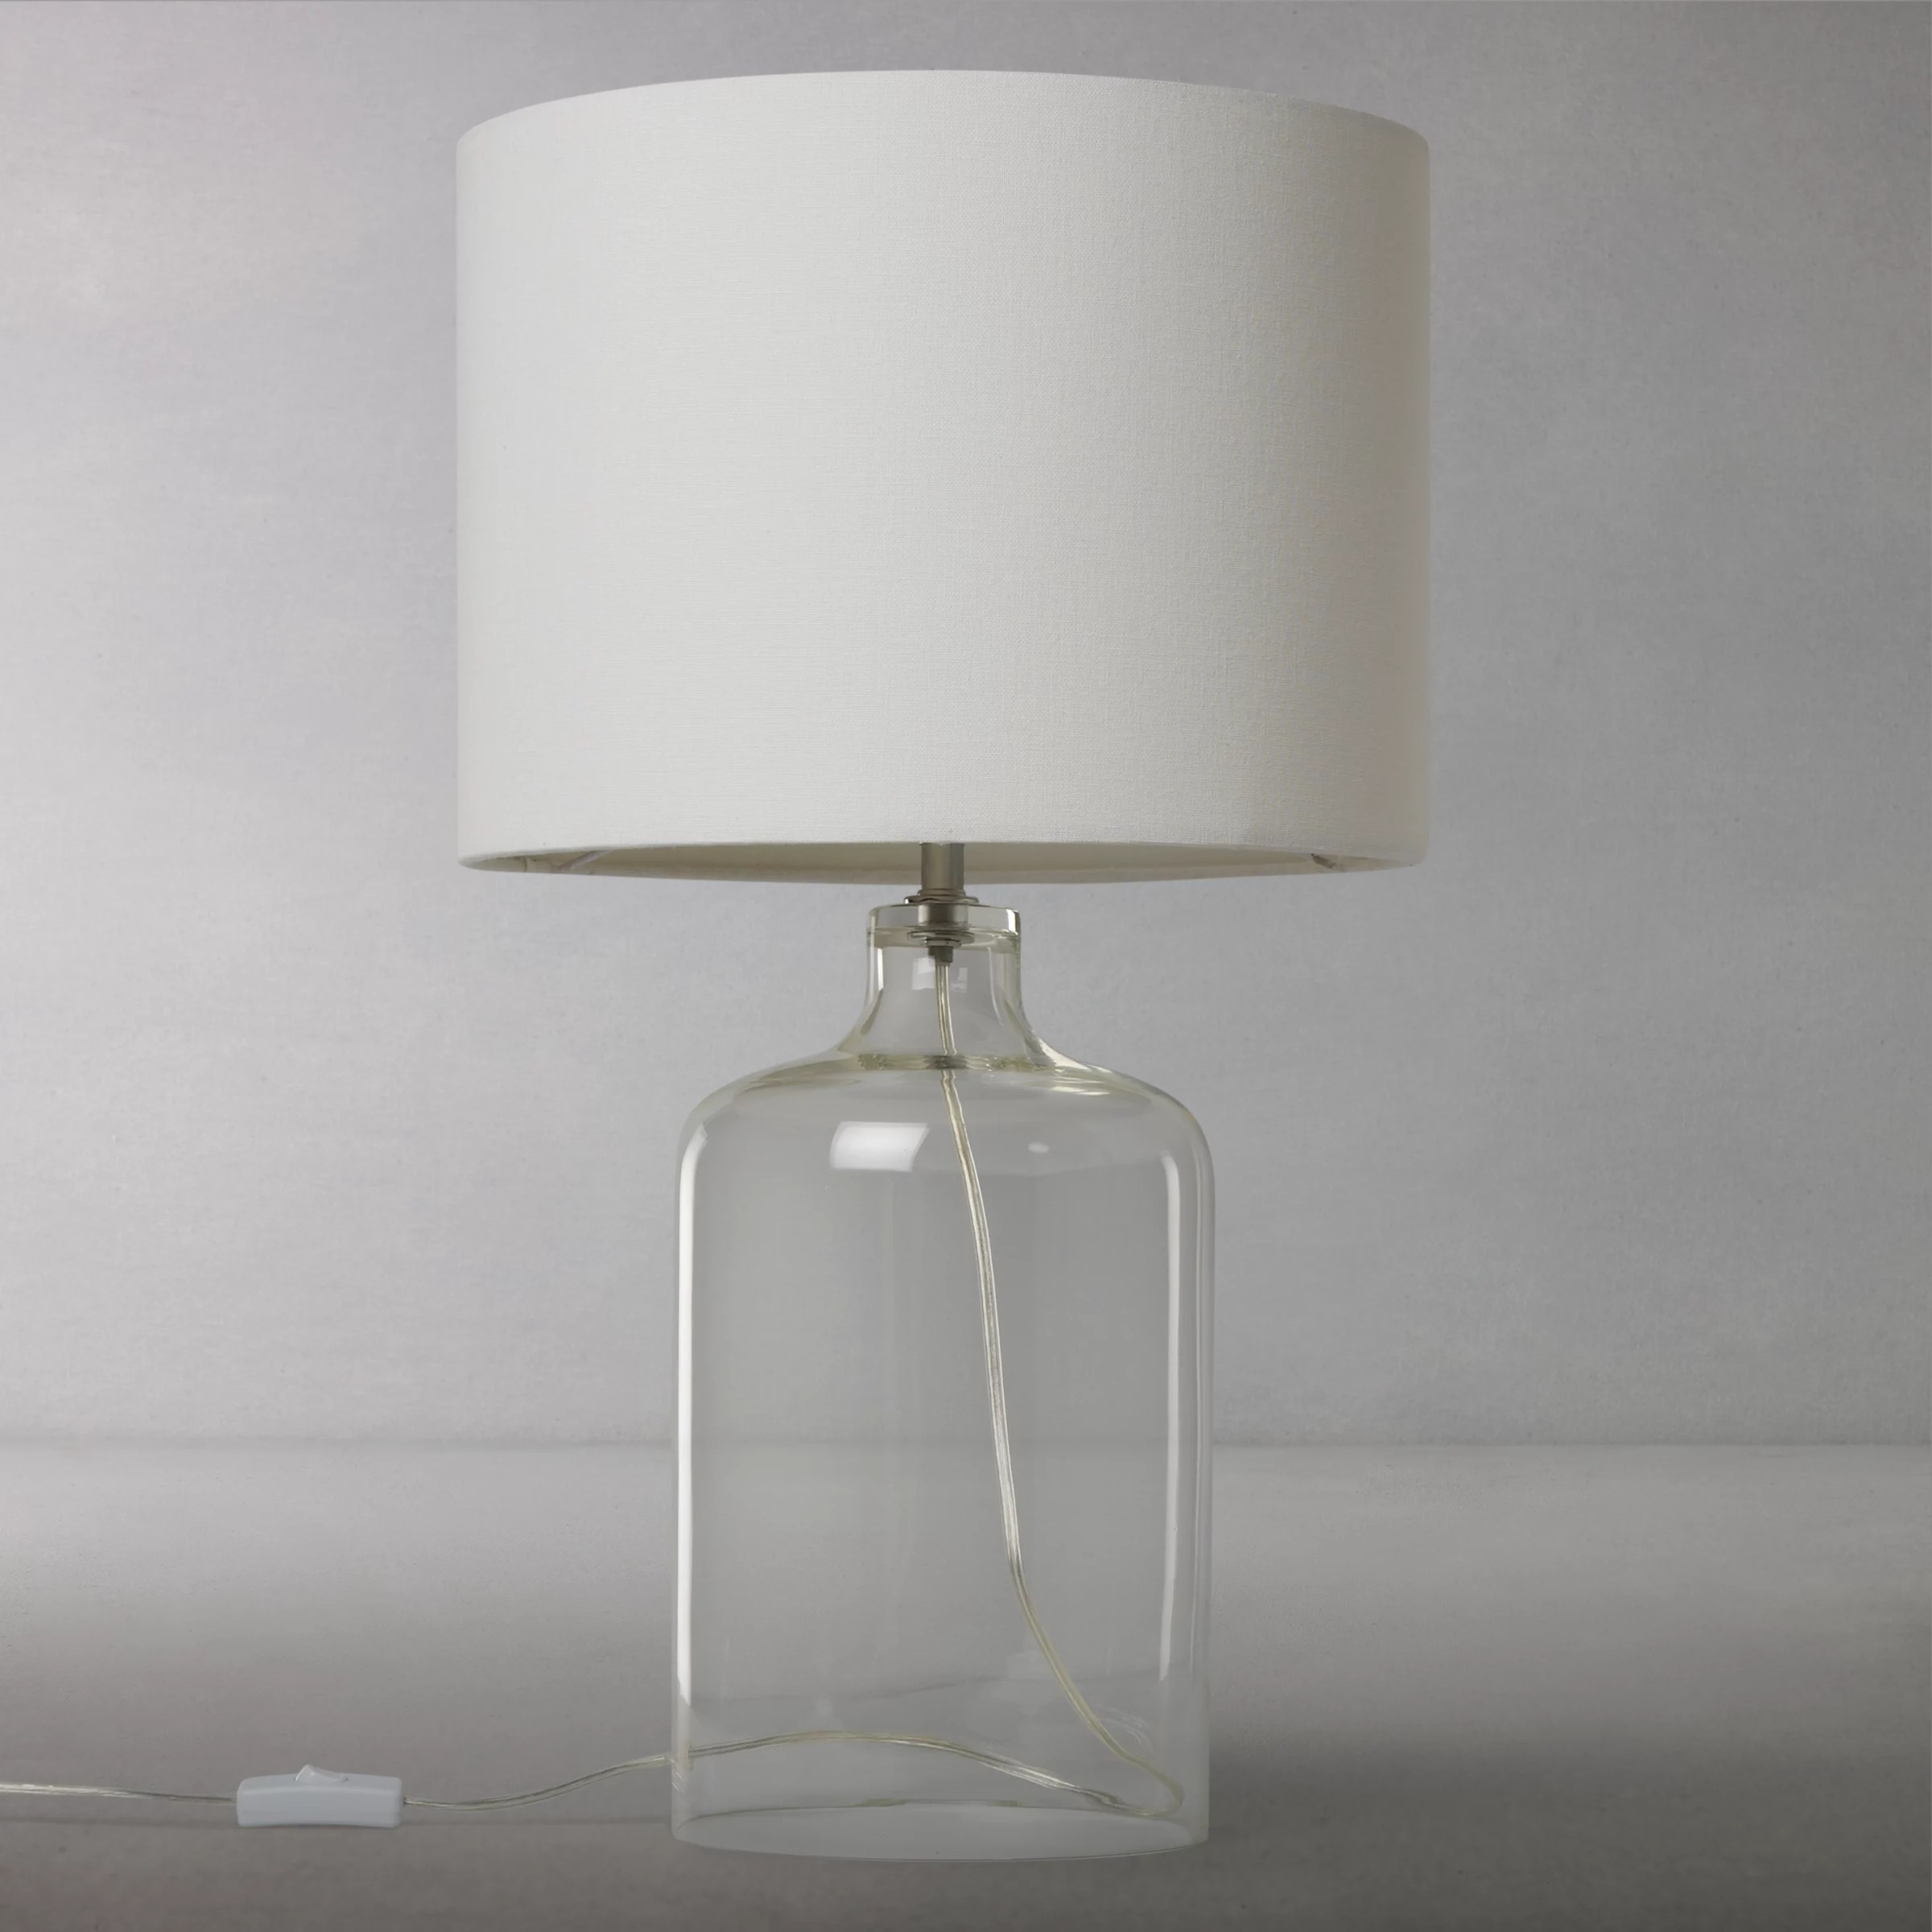 Glass Lamp John Lewis John Lewis Croft Collection William Glass Bottle Table Lamp